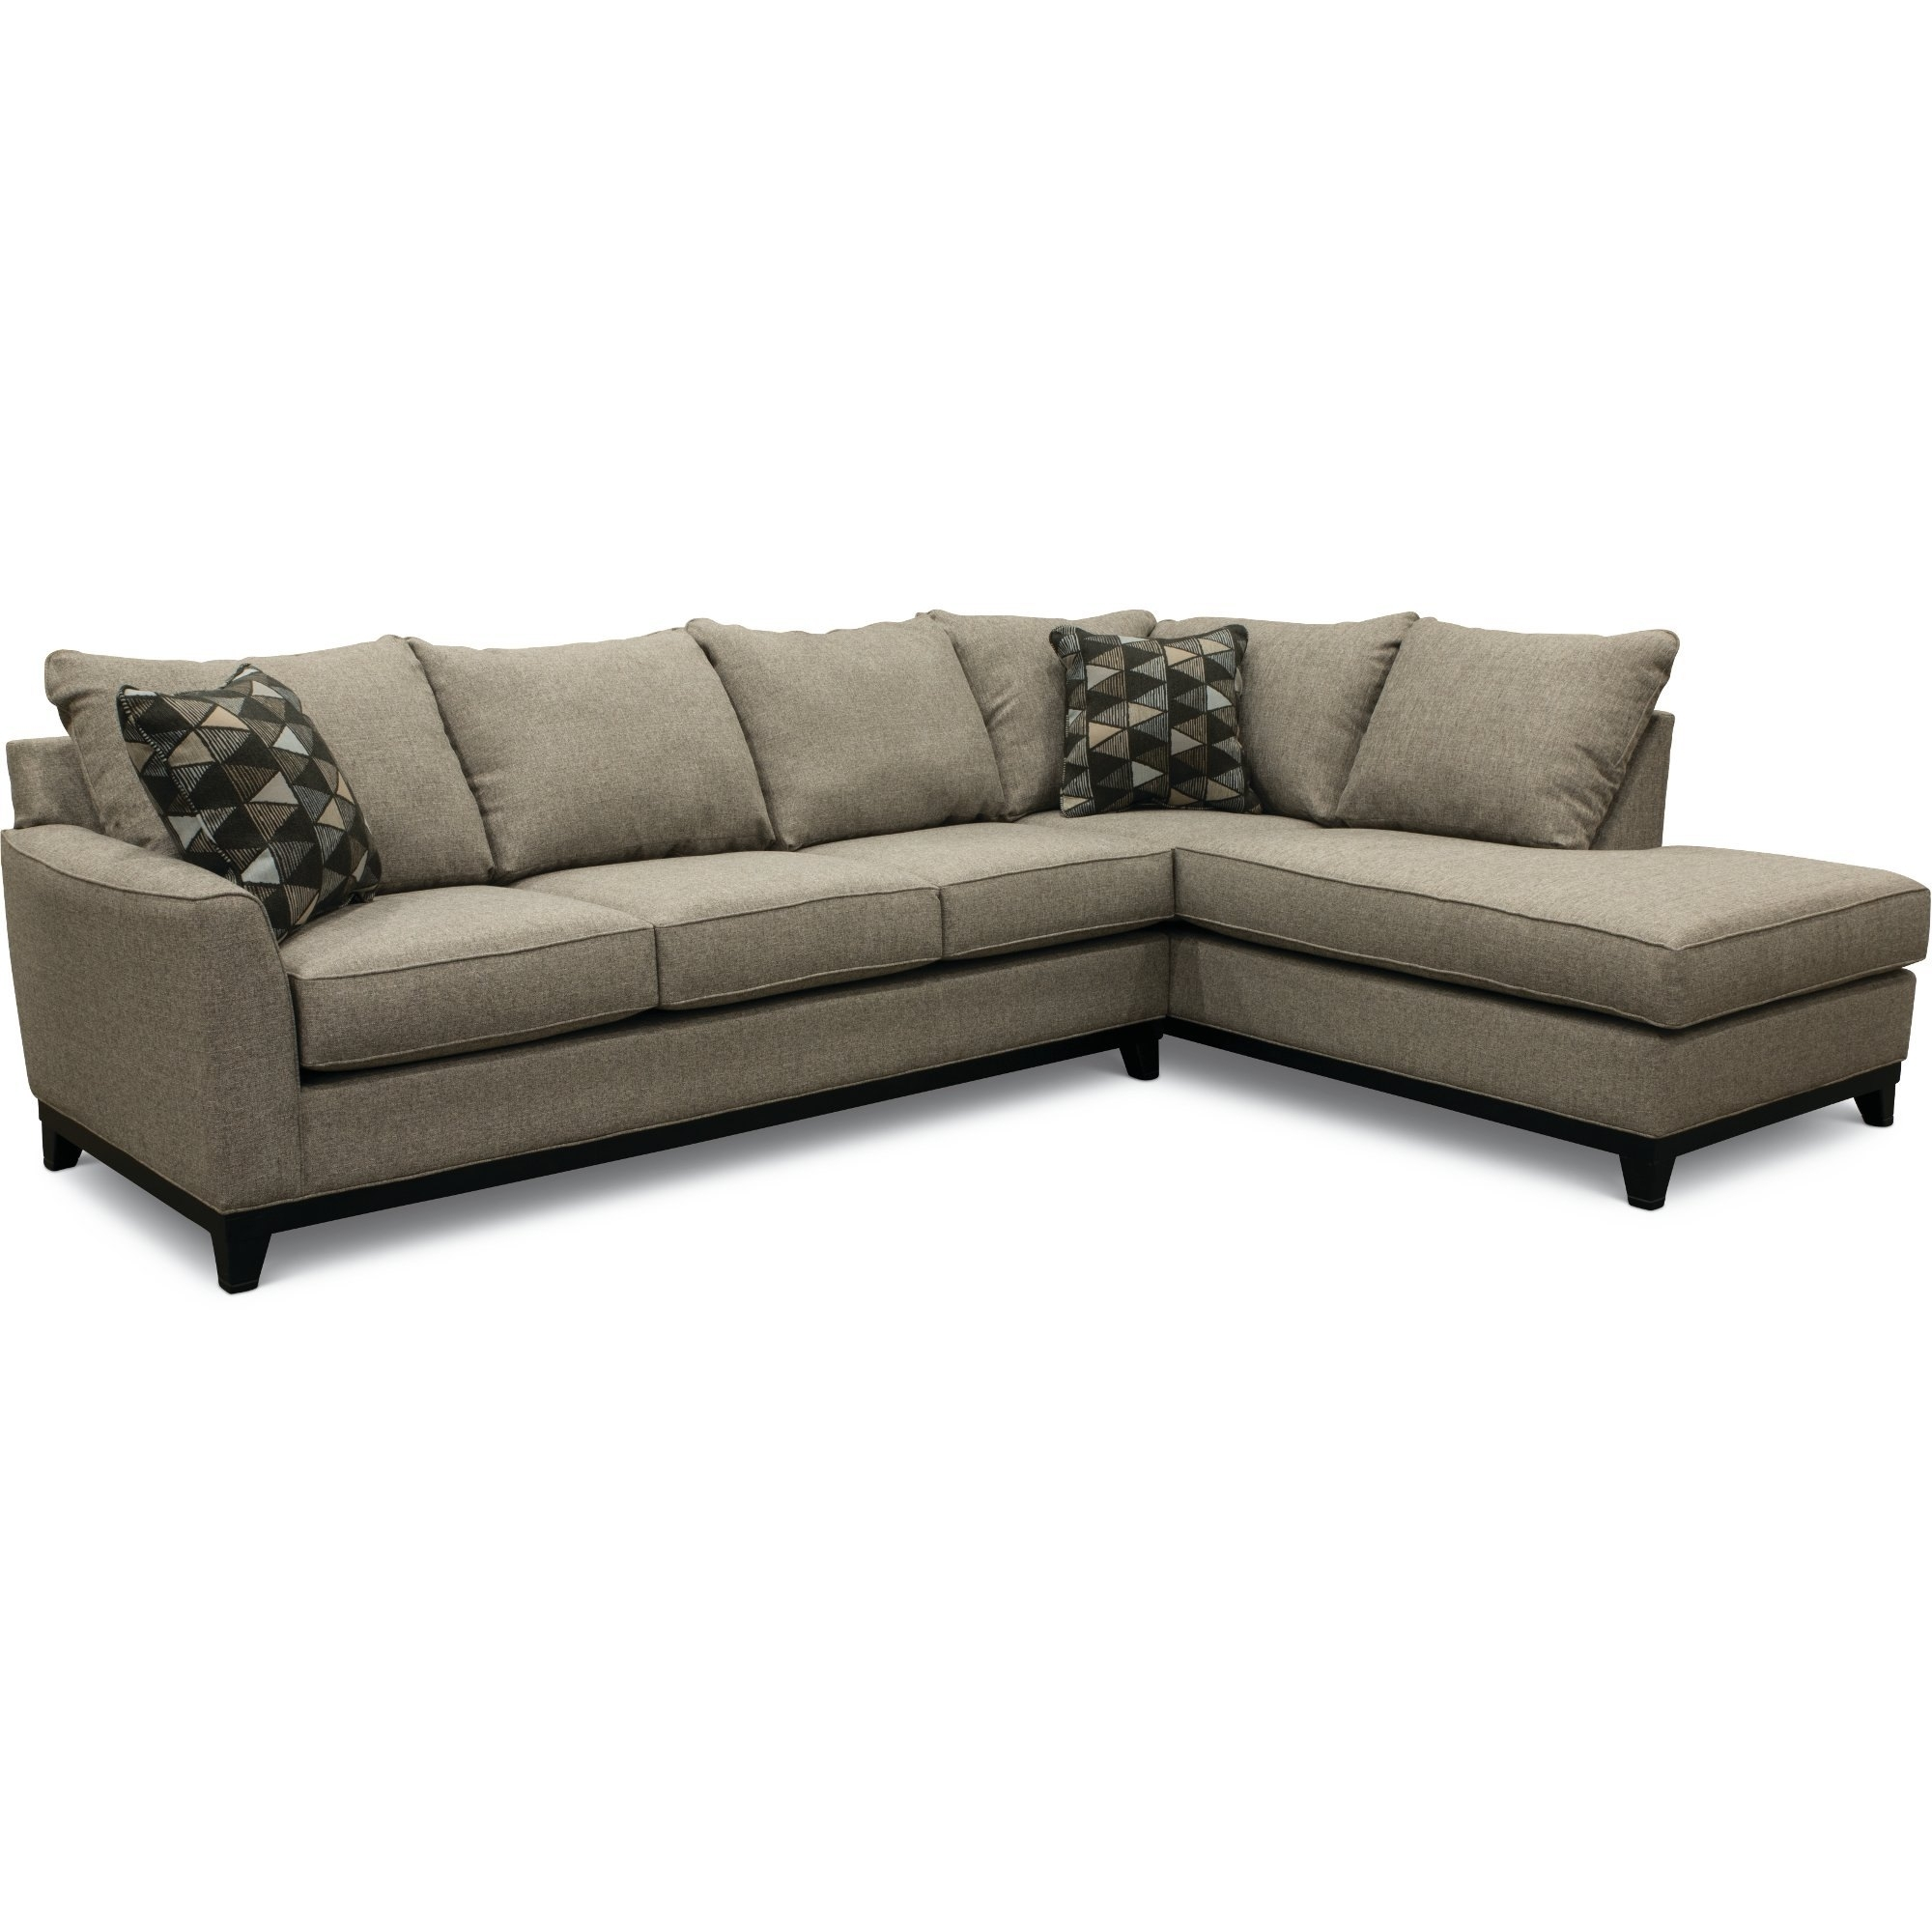 Sofa Sectional | Nokomis Charcoal Laf Sectional Inside Aquarius Light Grey 2 Piece Sectionals With Laf Chaise (Image 23 of 25)